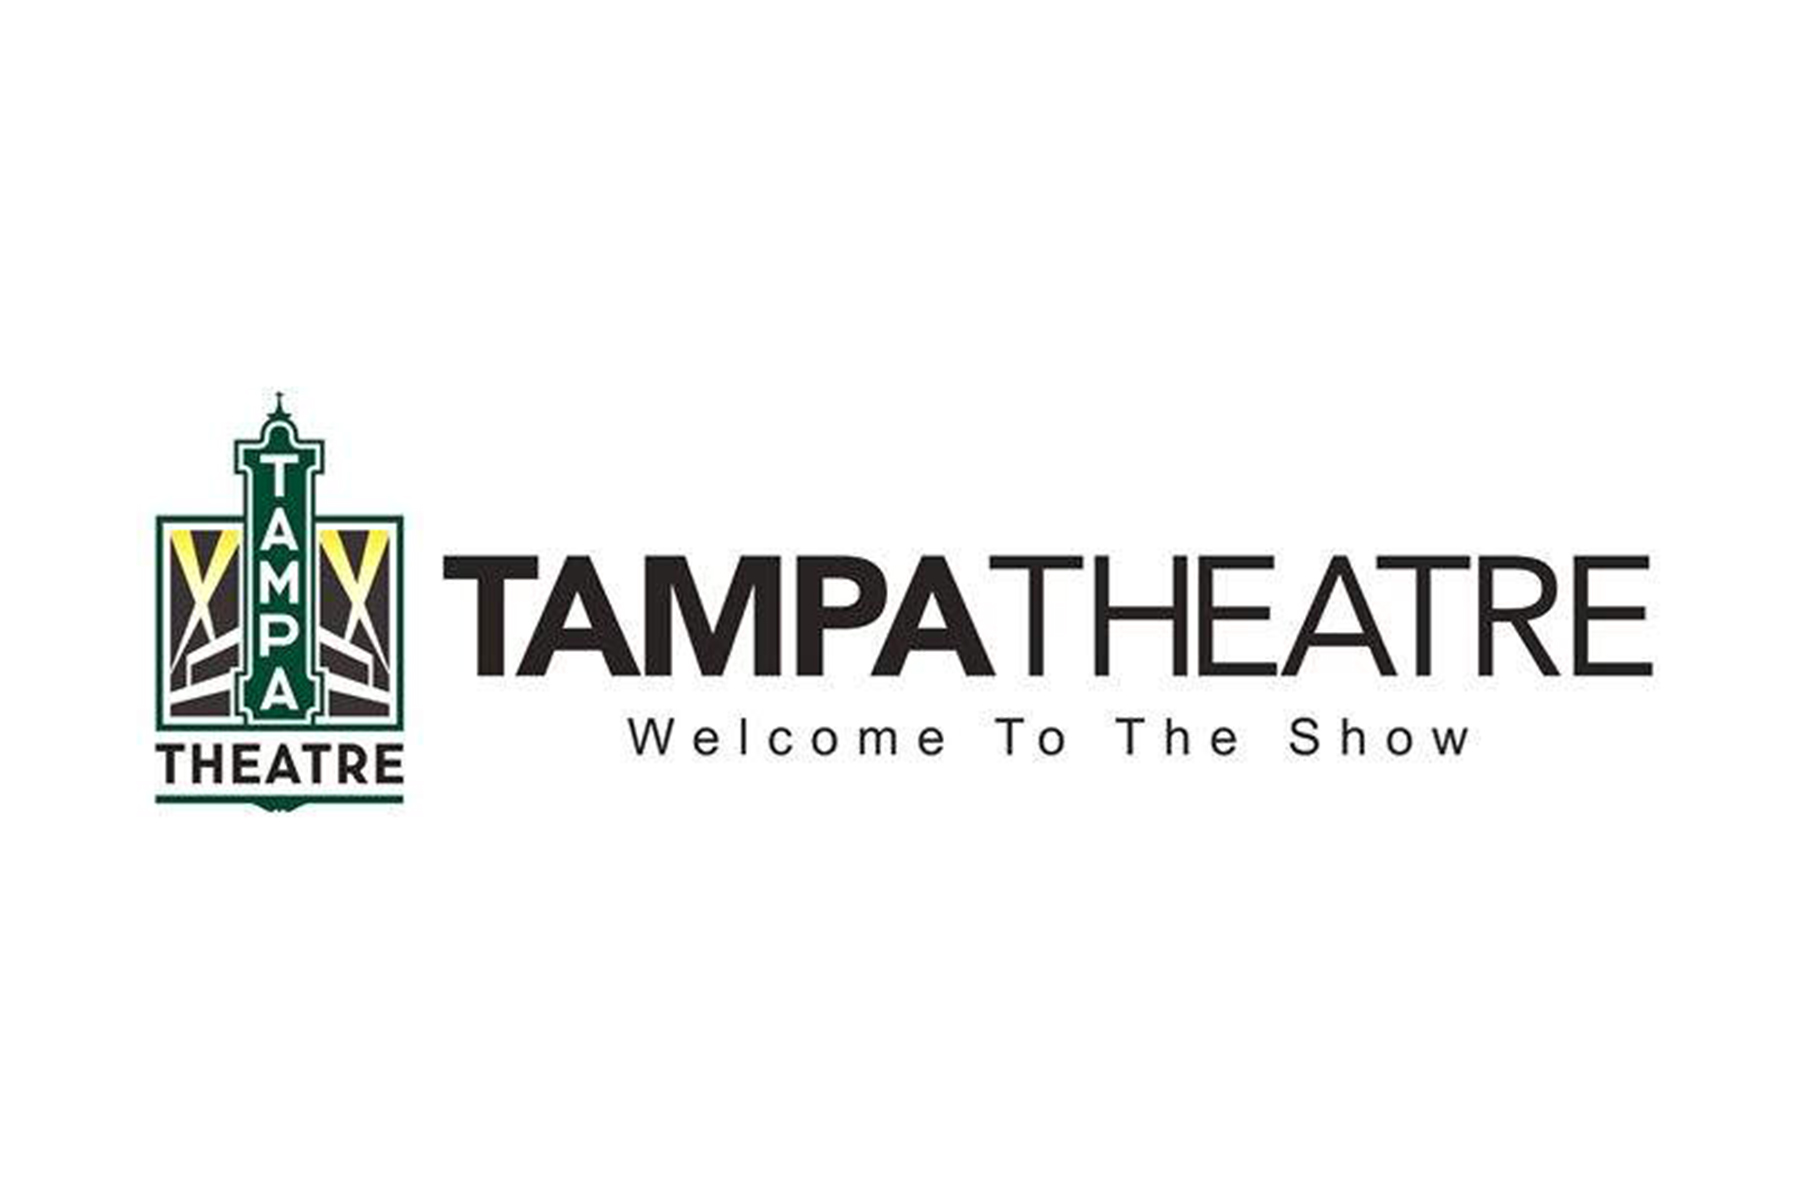 Tampa Theater.jpg